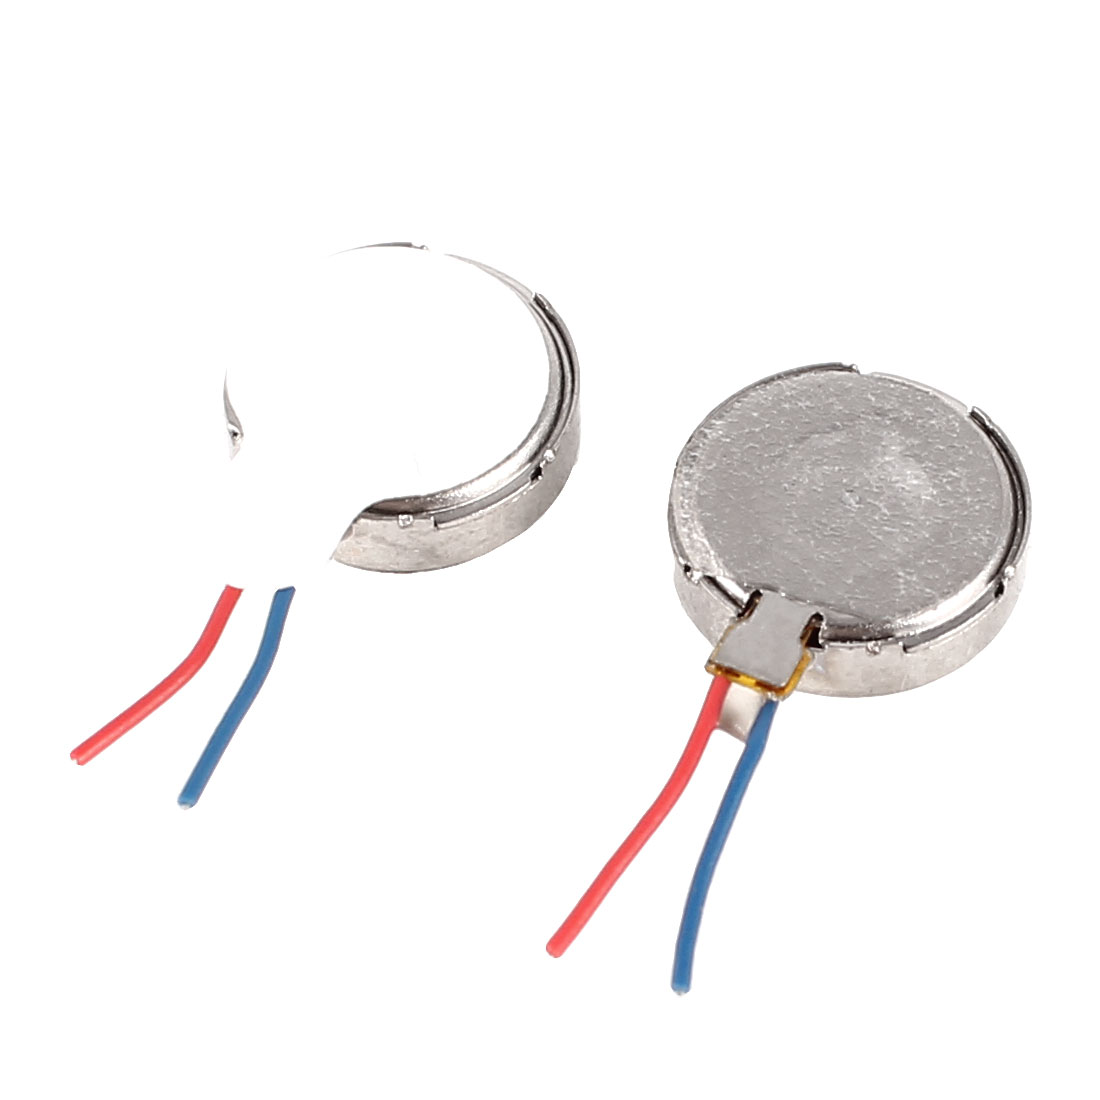 2-Pcs-DC-3V-10mm-x-3-2mm-Cell-Phone-Coin-Flat-Vibrating-Vibration-Mini-Motor